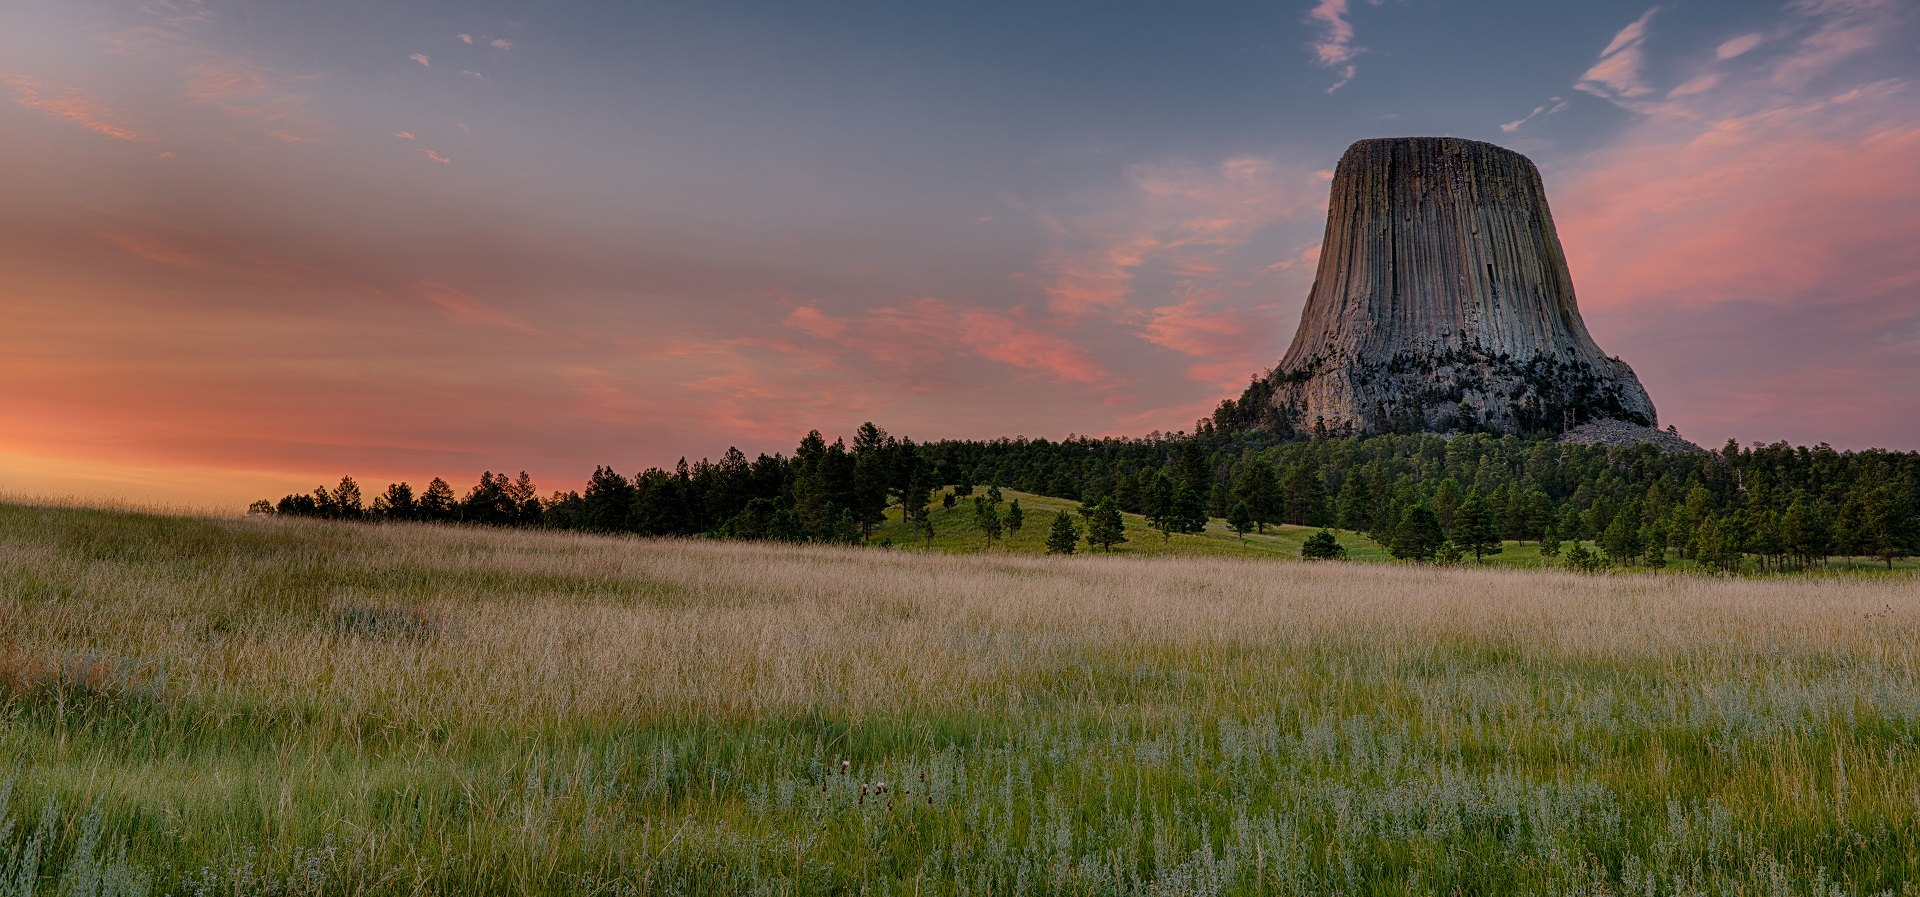 Mount Rushmore - Teufelsturm Devils Tower South Datoka